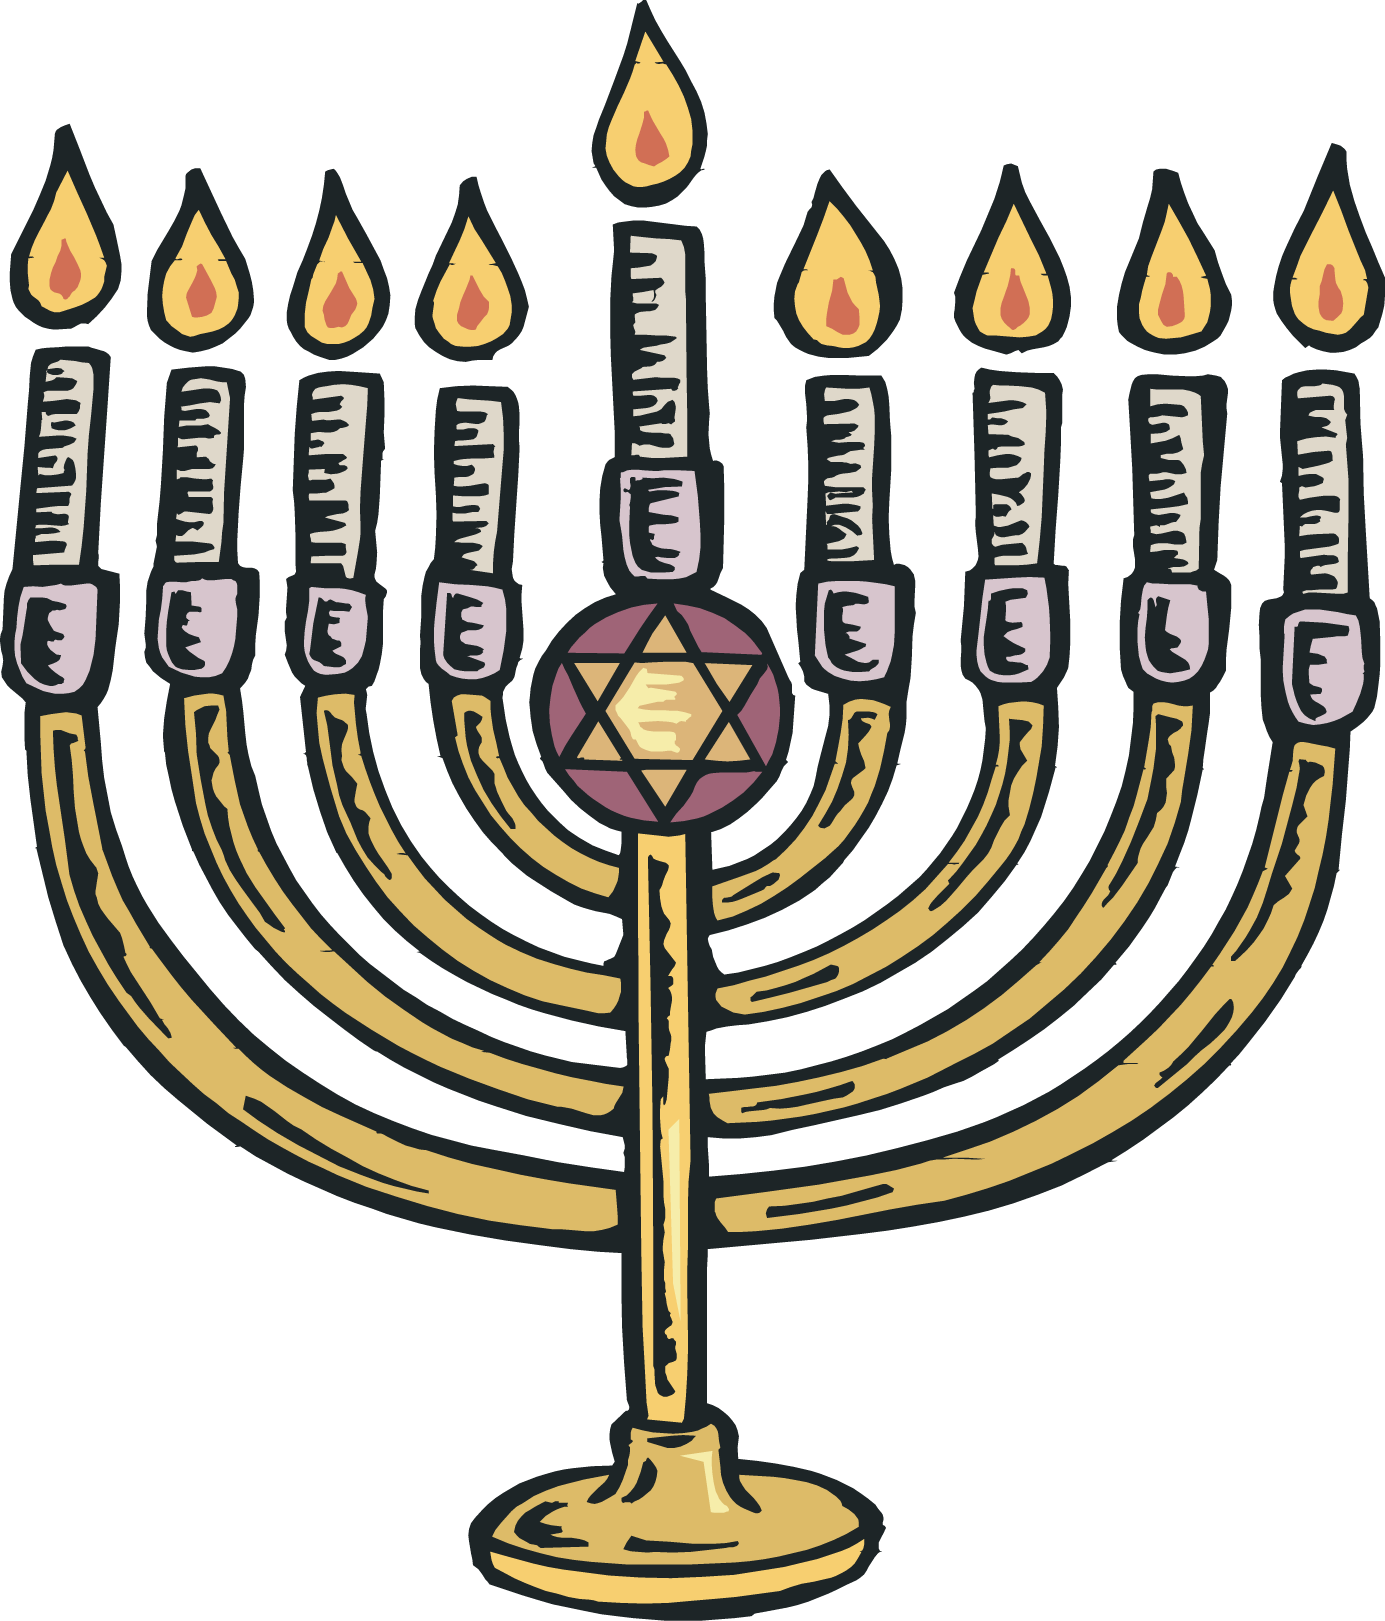 Jewish crown clipart graphic freeuse stock 28+ Collection of Menorah Clipart Free | High quality, free cliparts ... graphic freeuse stock